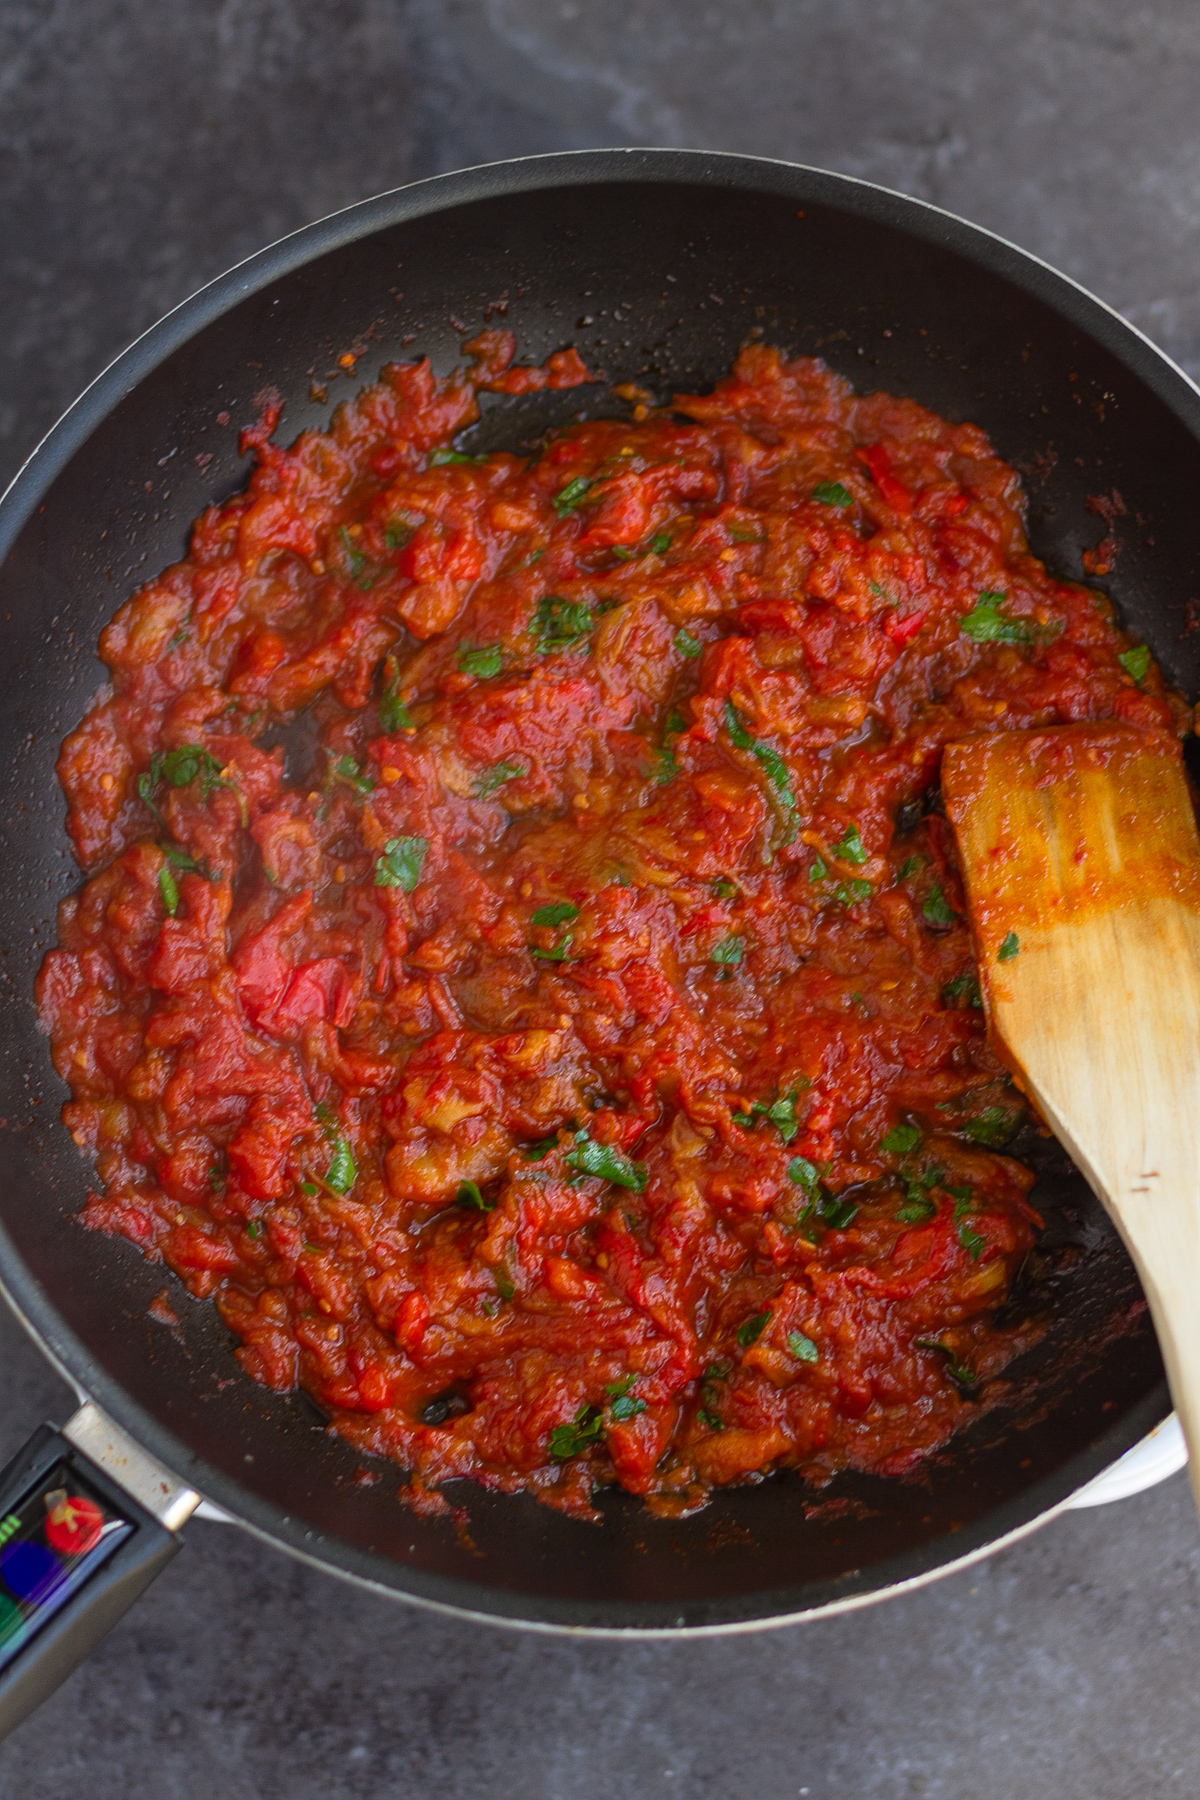 reduced aubergine, tomato and rep pepper mix with parsley